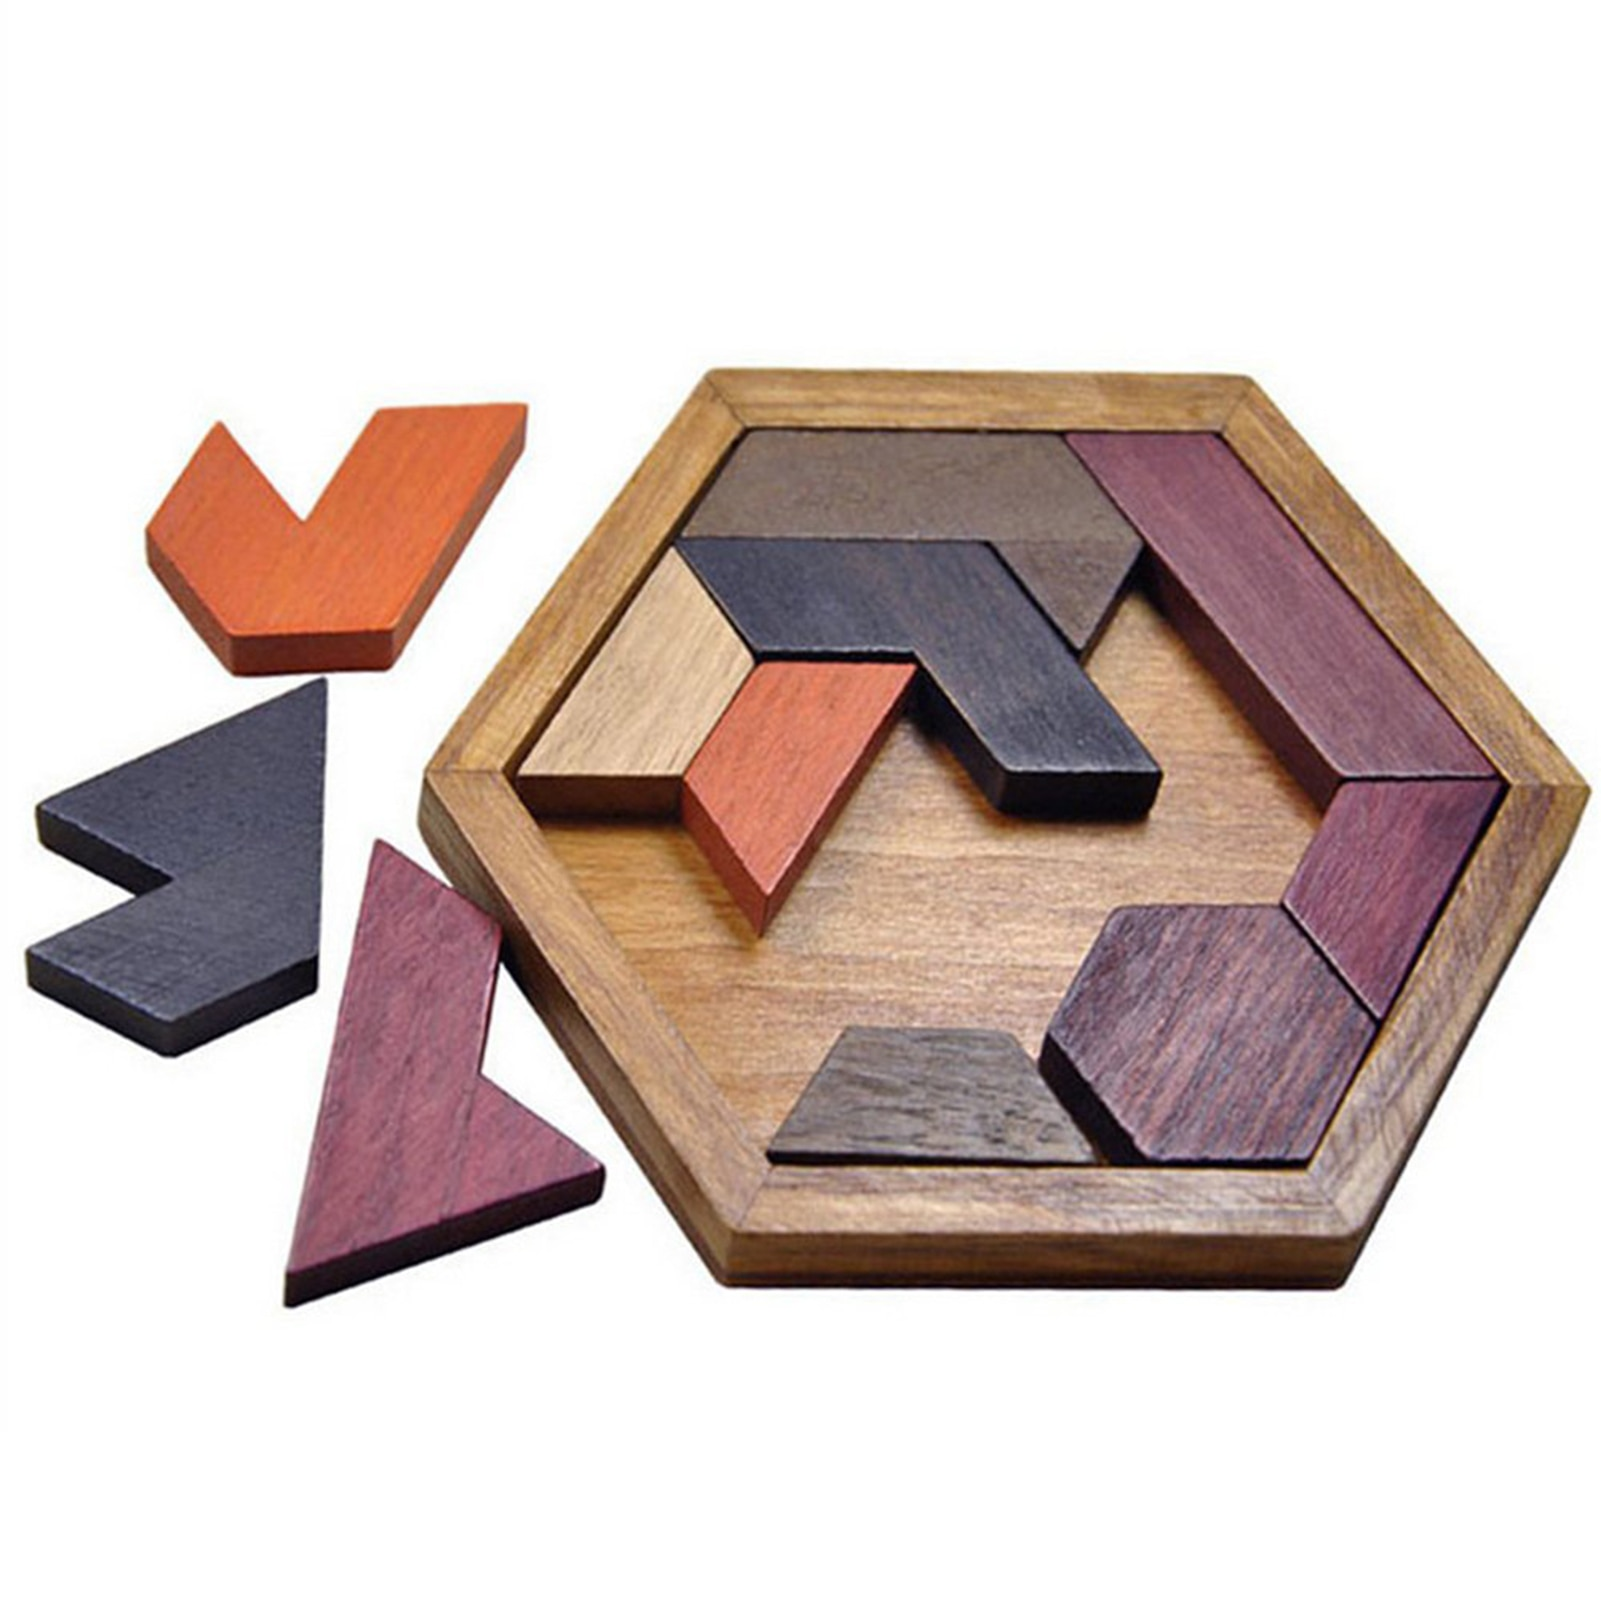 colorful cognition board kids montessori educational toy children wooden jigsaw color match game board puzzles child wooden toy Jigsaw Puzzle Montessori Toy Hexagonal Wooden Geometric Shape Jigsaw Puzzles Chess Game Kids Educational Toy Board Games